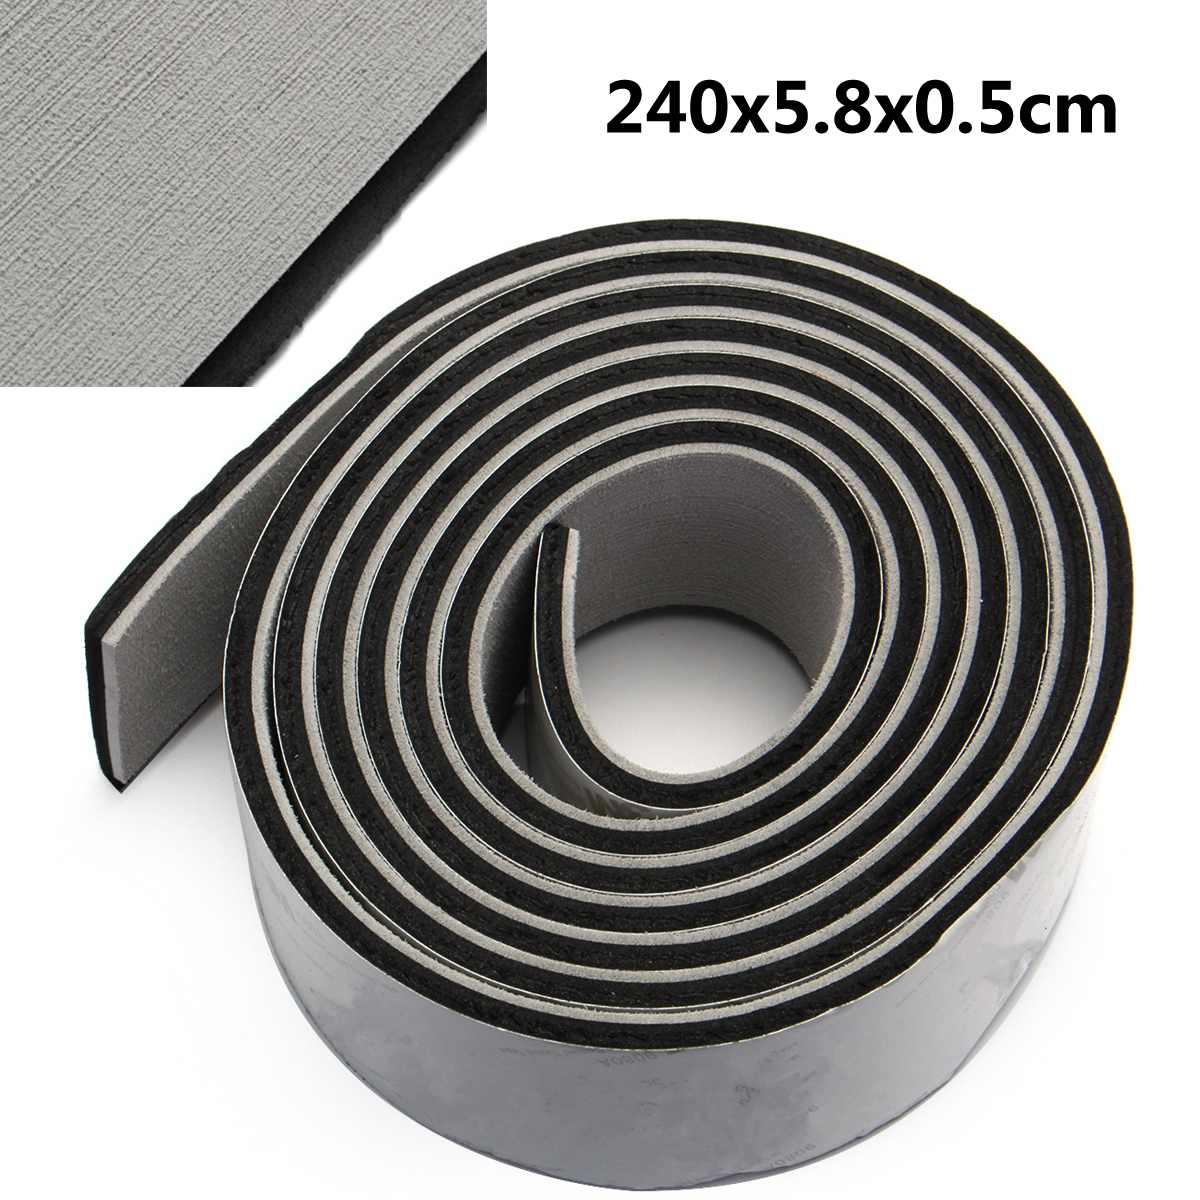 2400x58x5mm Self-Adhesive EVA Foam Boat Marine Boat Flooring Faux Boat Teak Decking Sheet Accessories Marine Pad Gray & Black